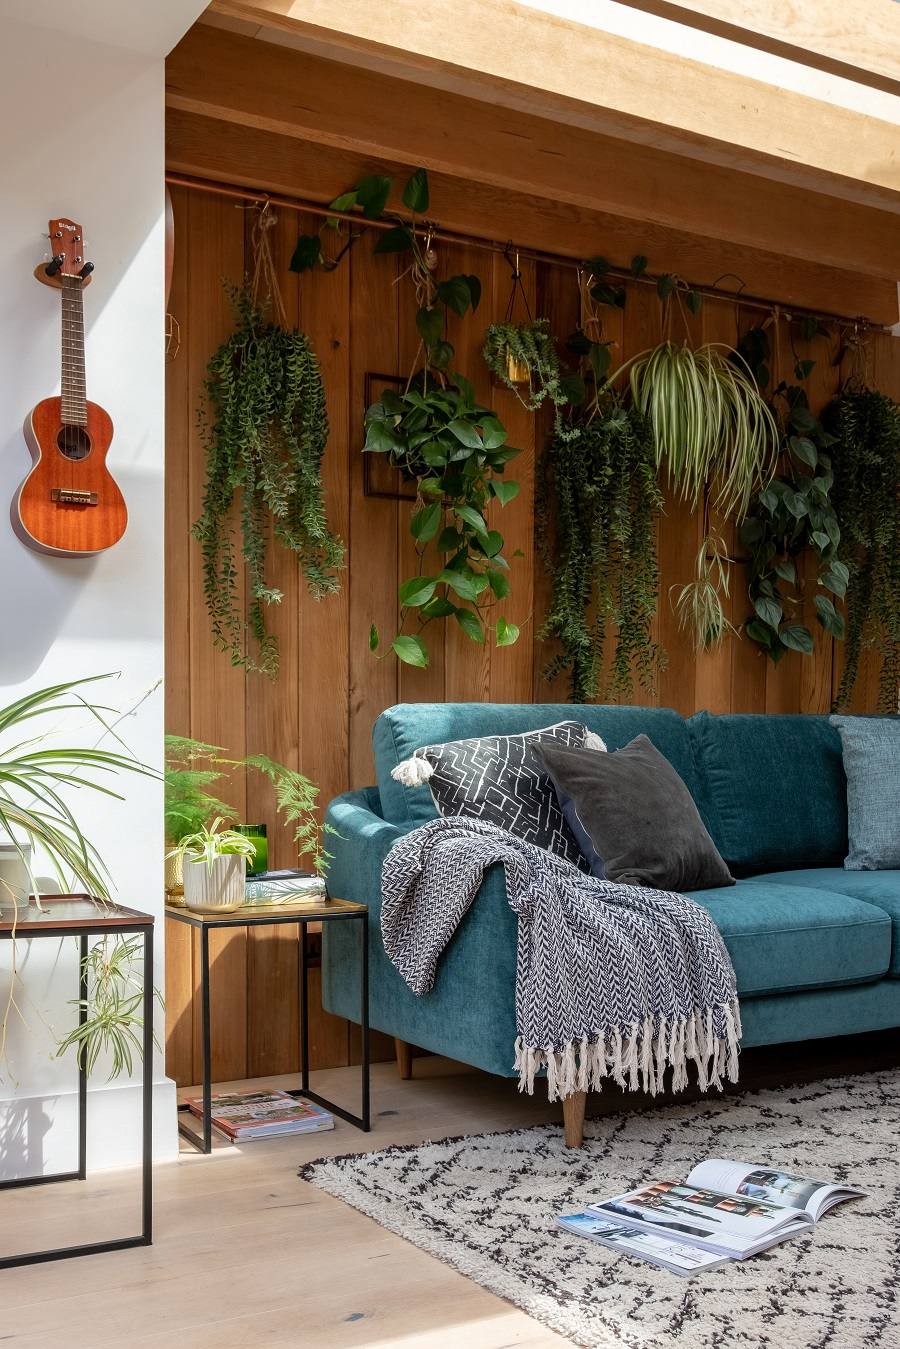 A Sitting Room That Uses Biophilic Design and How to Get The Look